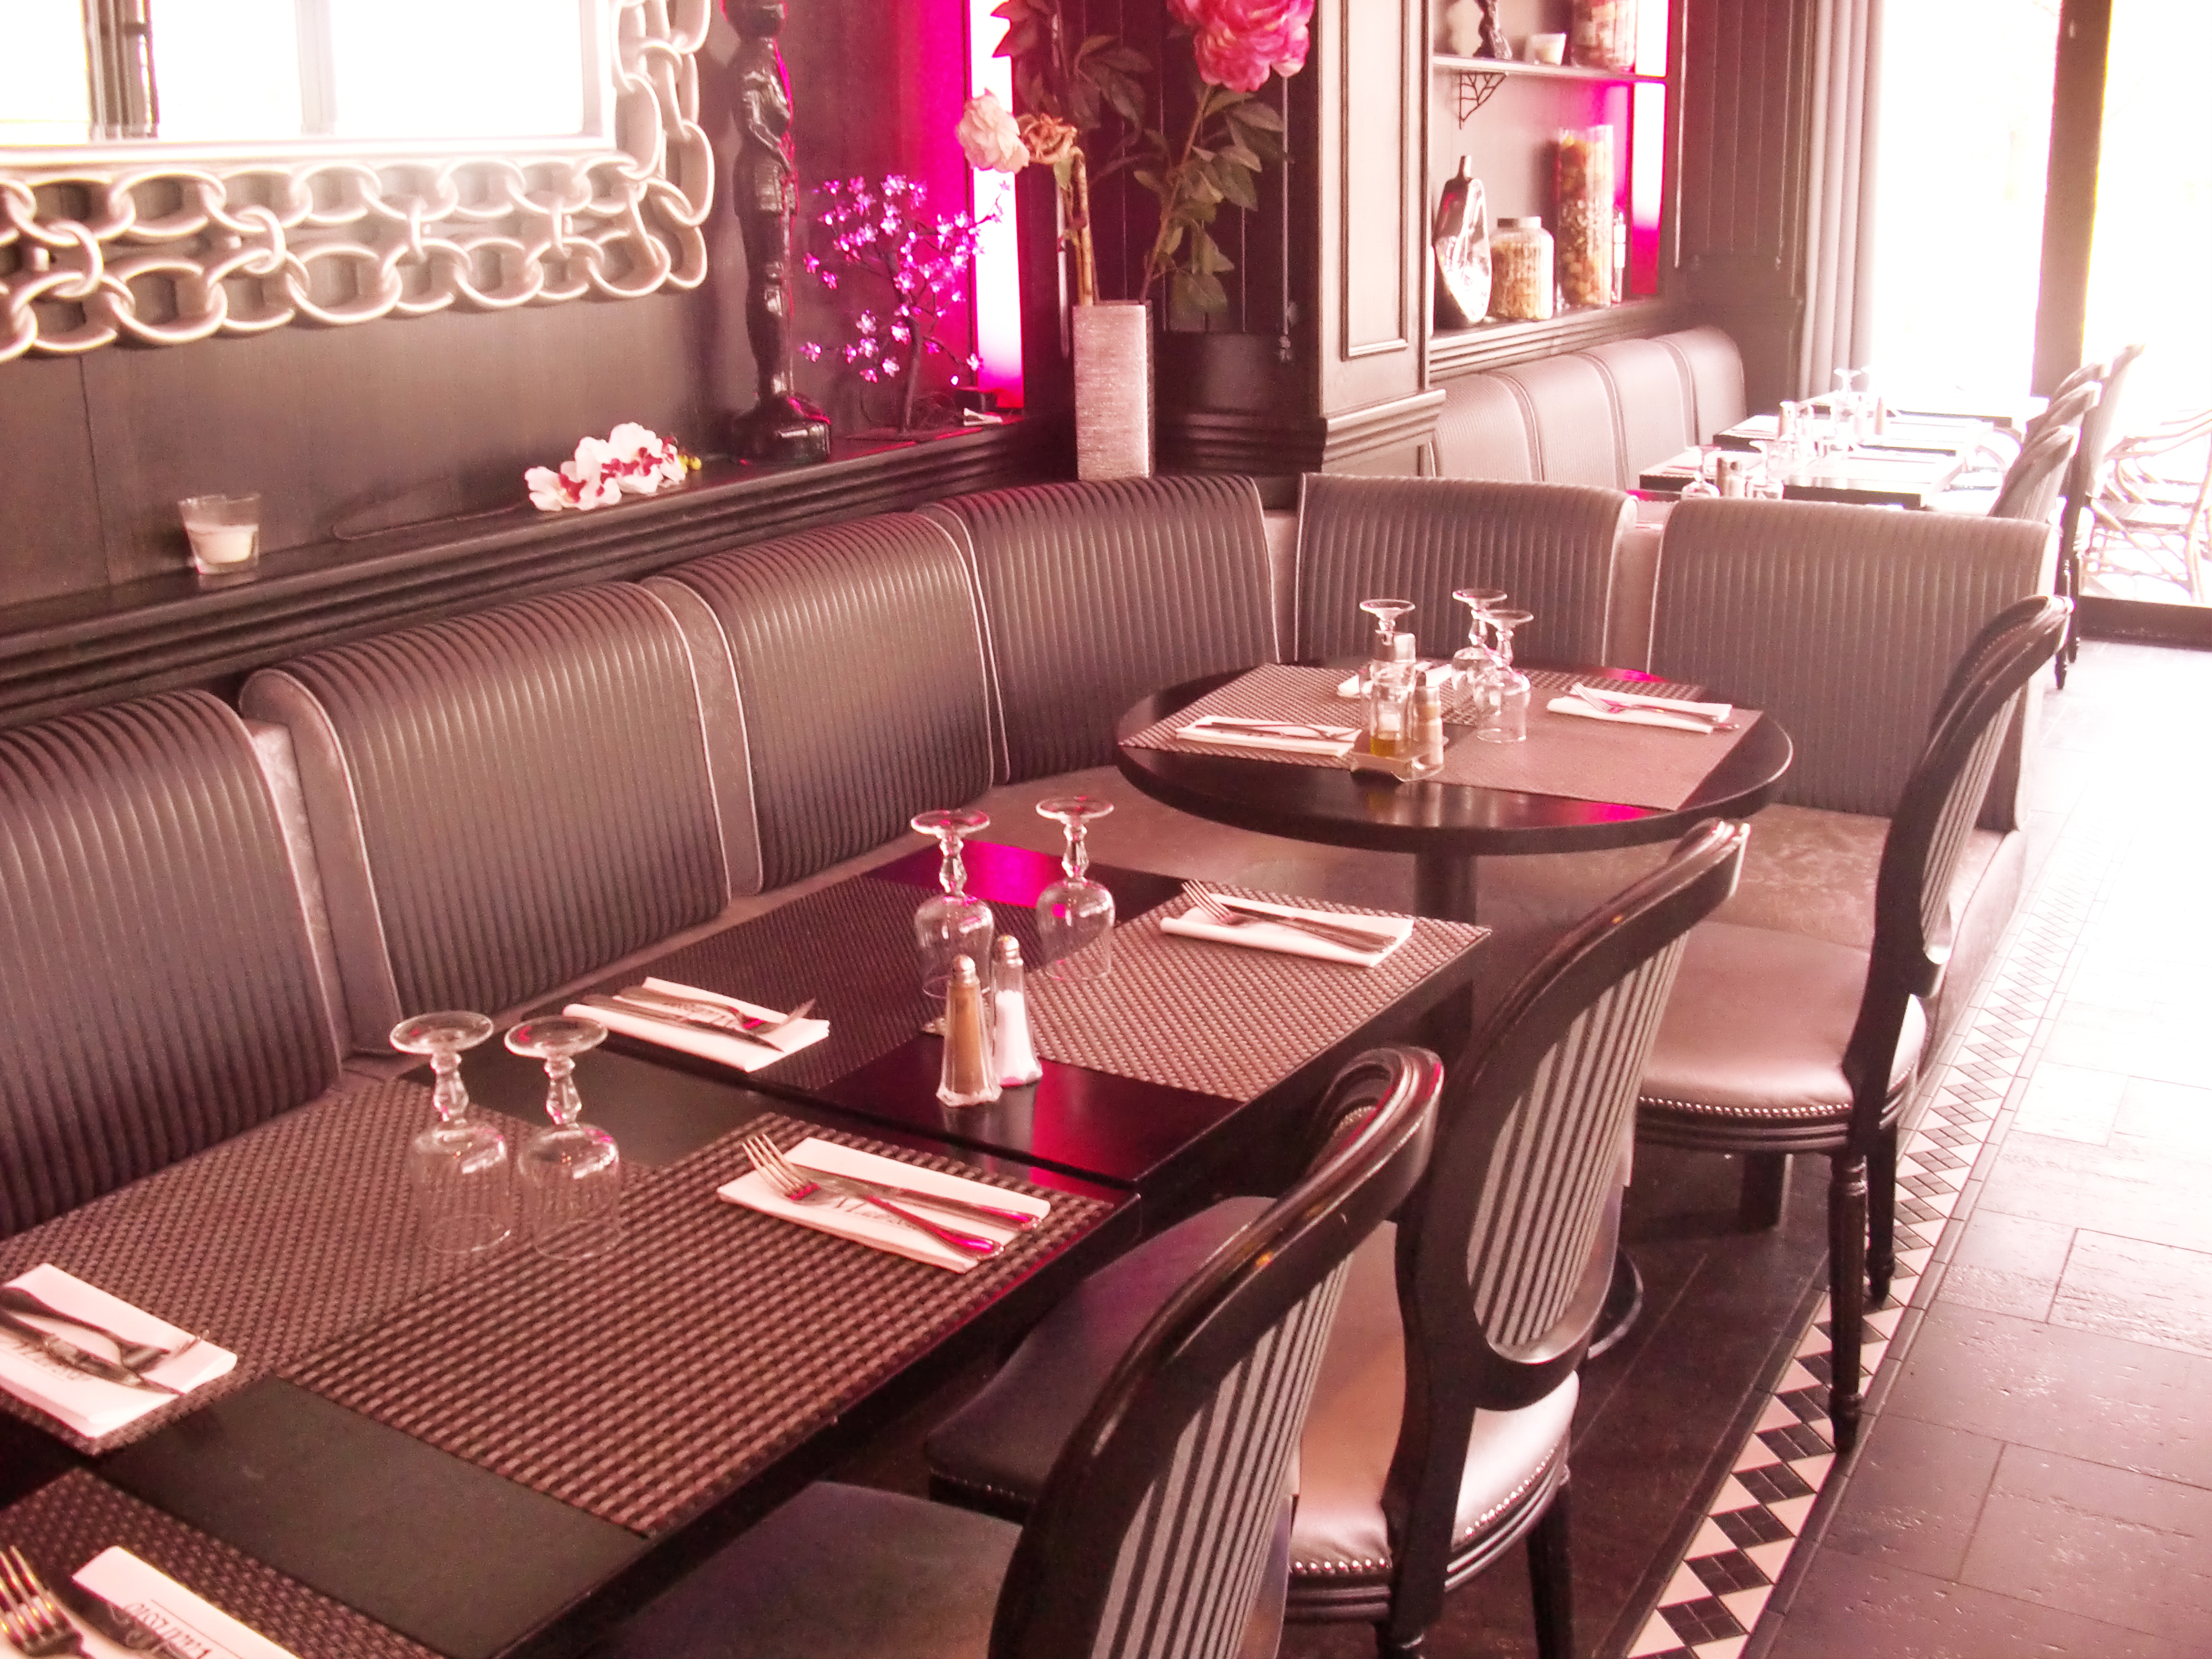 Madrissio In Courbevoie Restaurant Reviews Menu And Prices Thefork